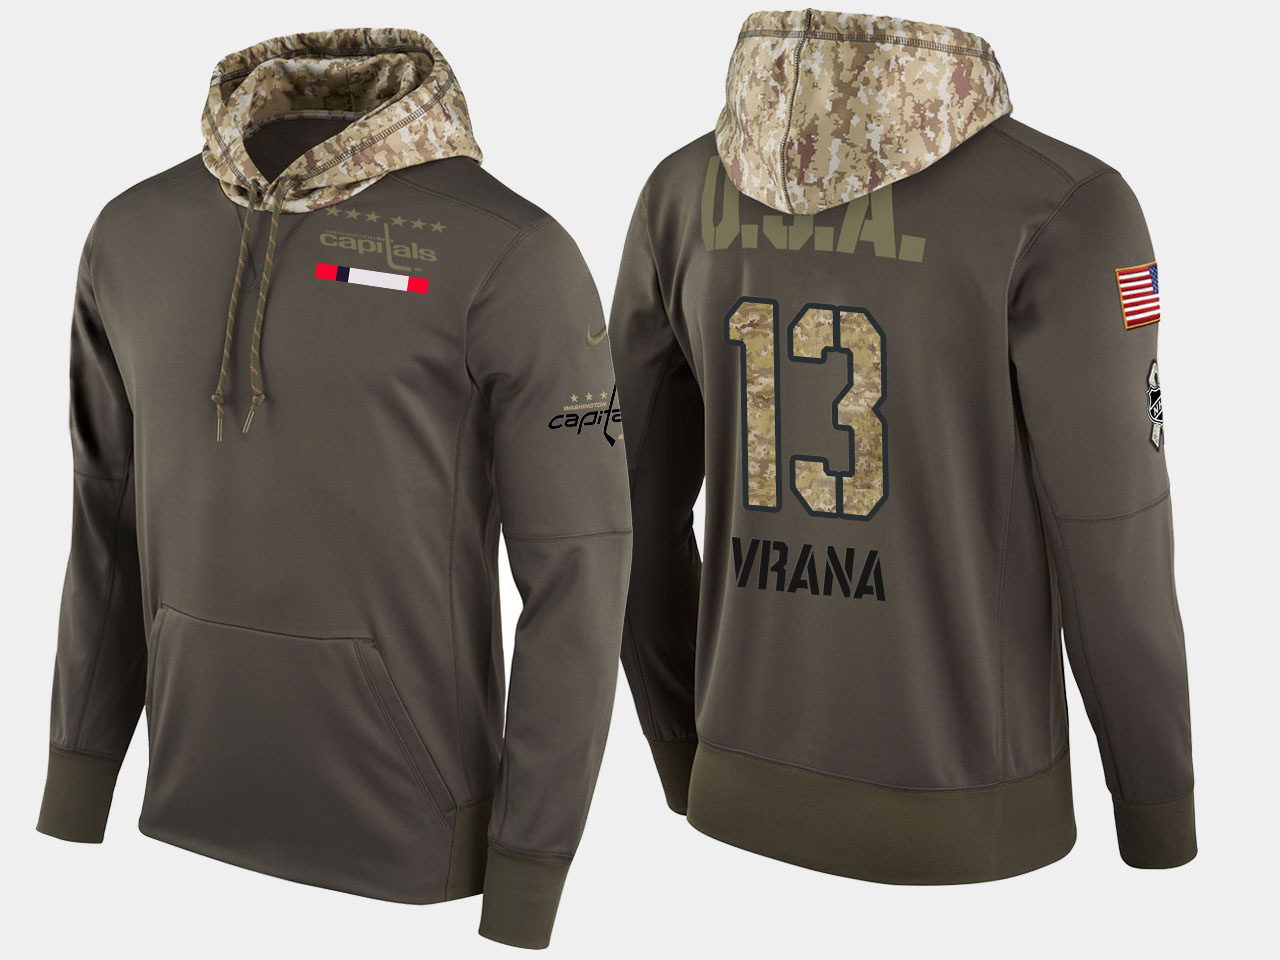 Nike Capitals 13 Jakub Vrana Olive Salute To Service Pullover Hoodie